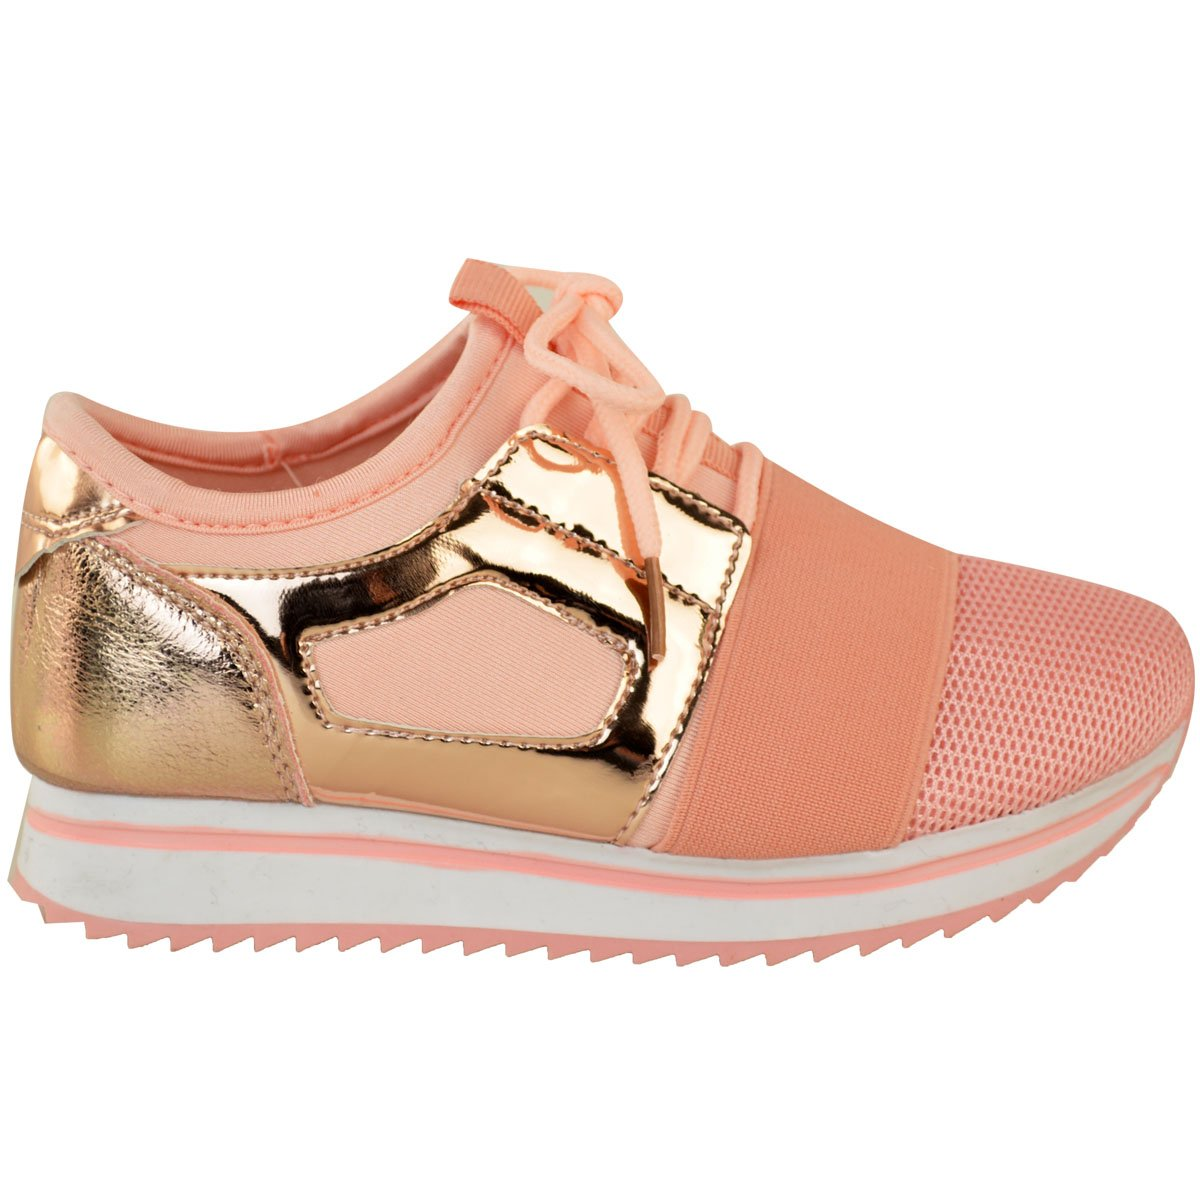 Fashion Thirsty Girls Kids Unisex Bali Sneakers Runners Sport Glitter Pumps Shoes Size